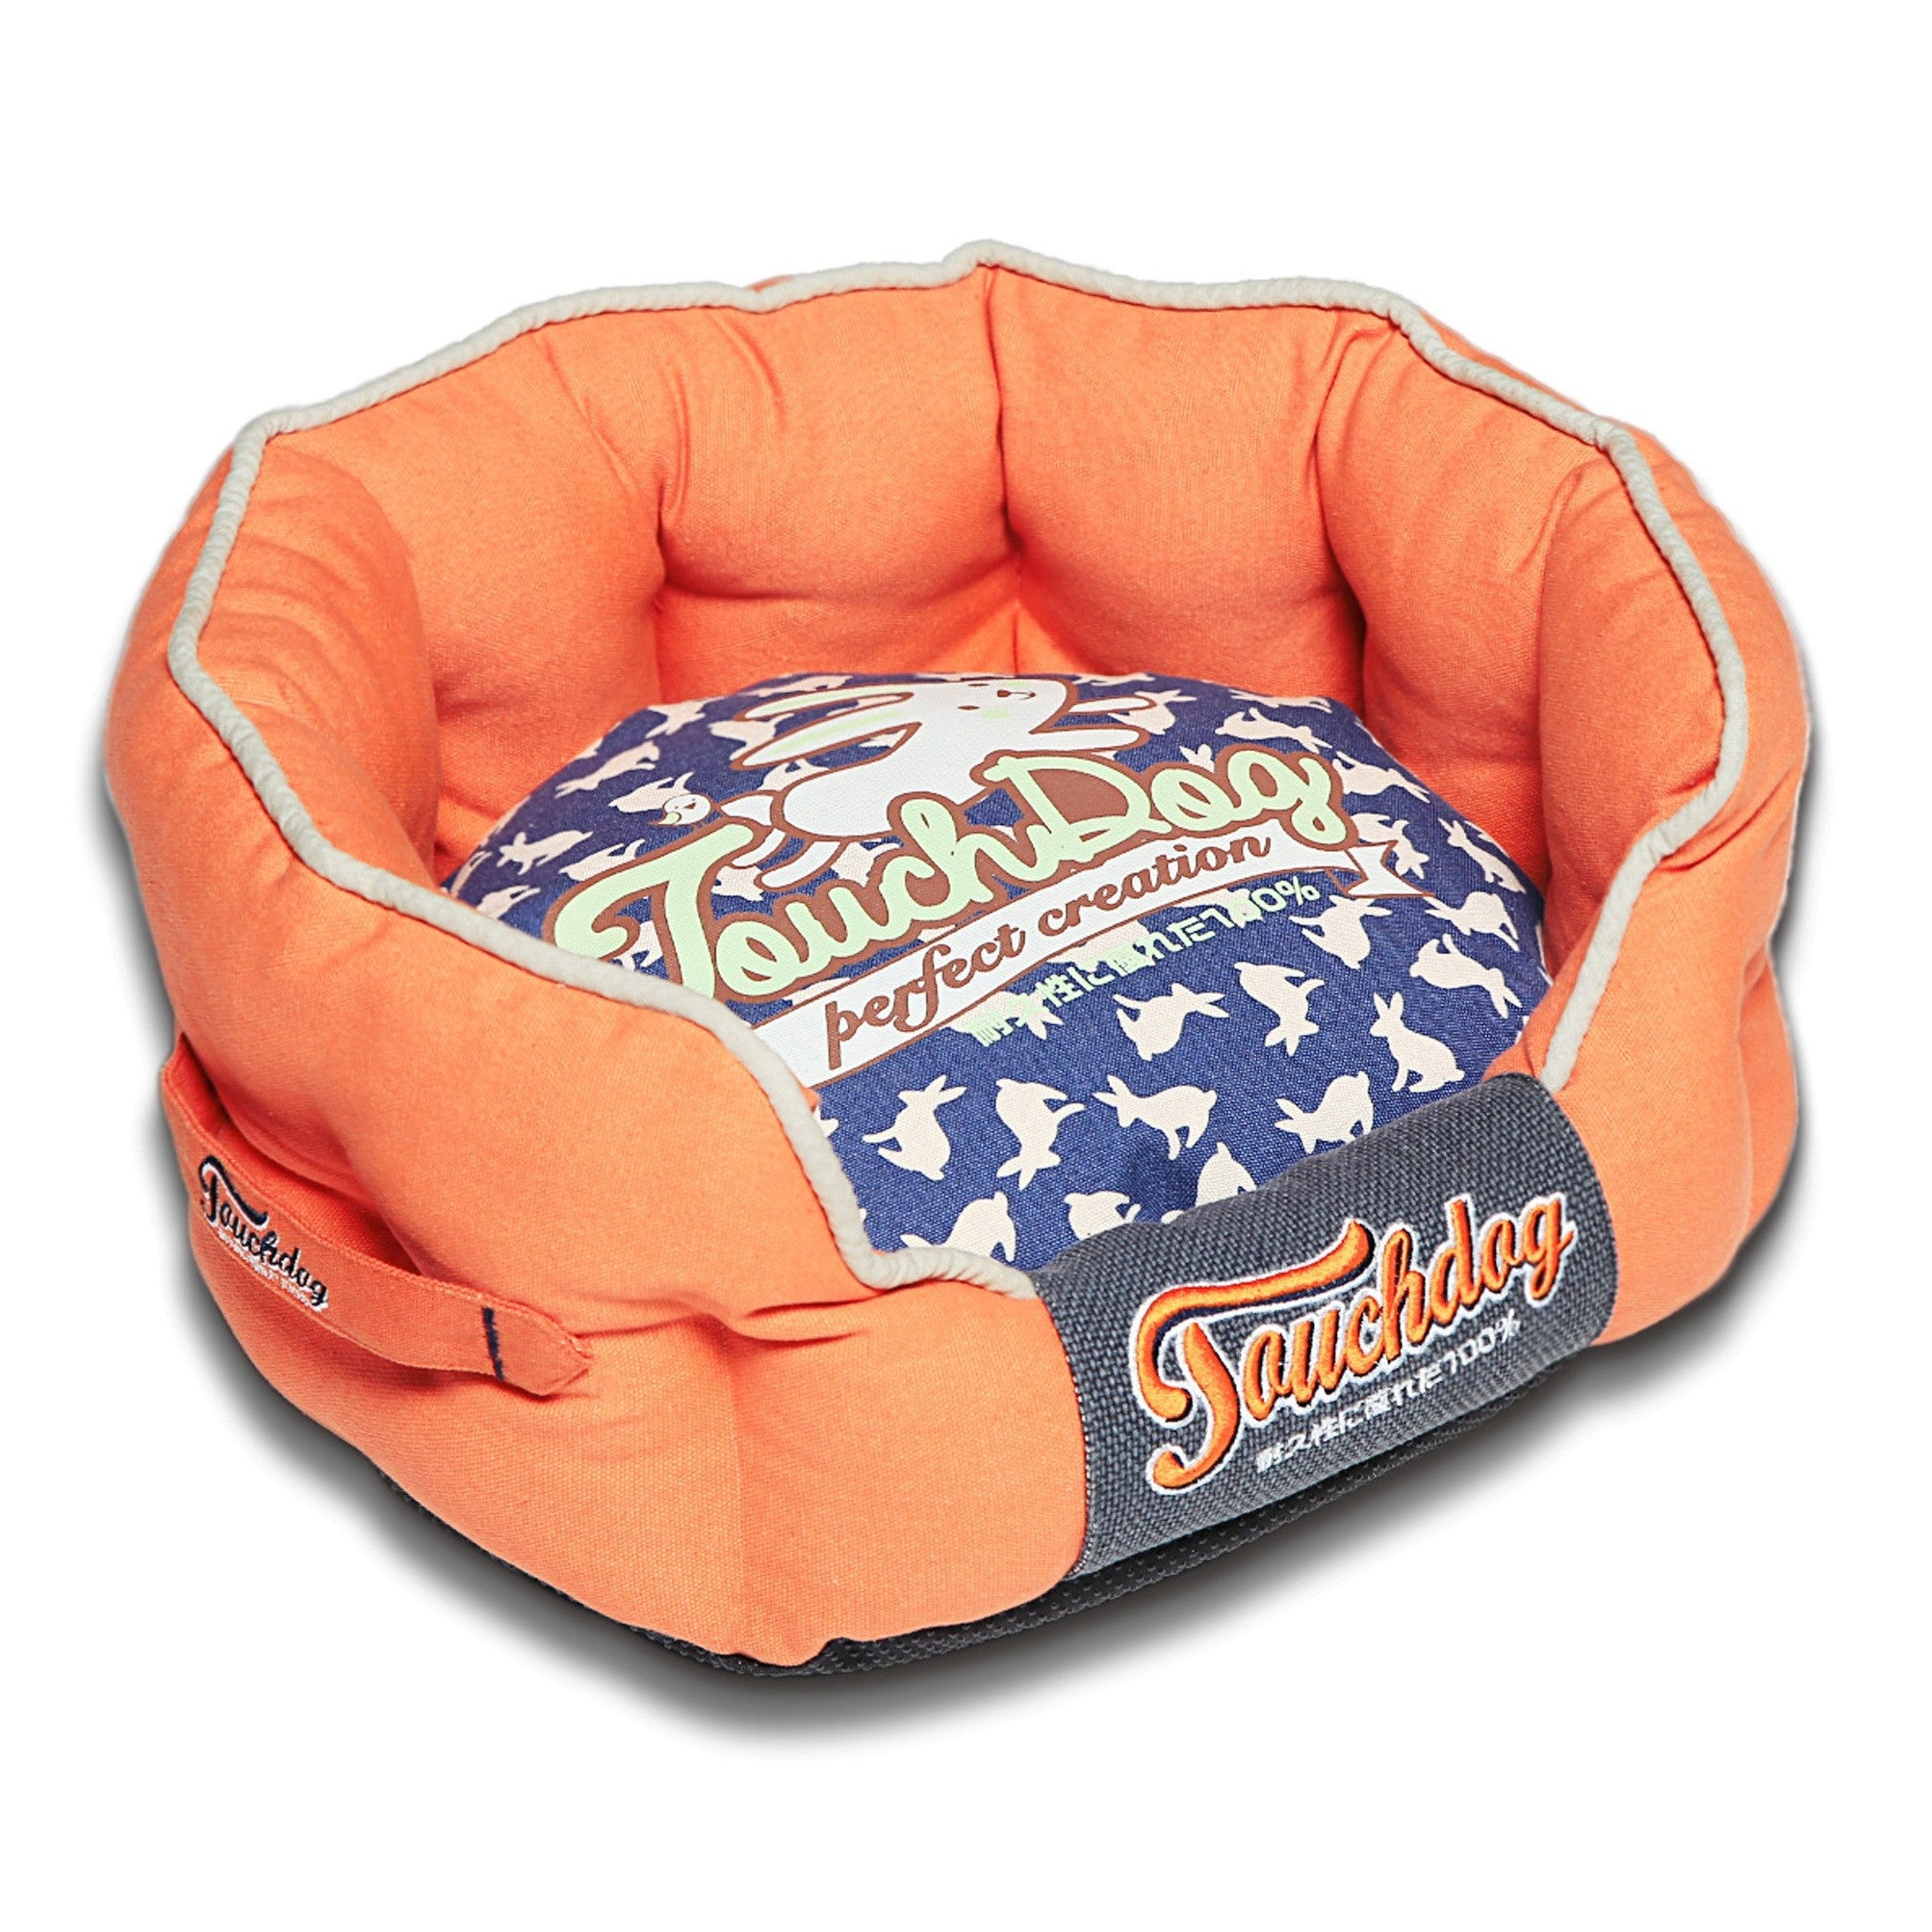 Petlife Touchdog Rabbit-Spotted Premium Rounded Dog Bed (...